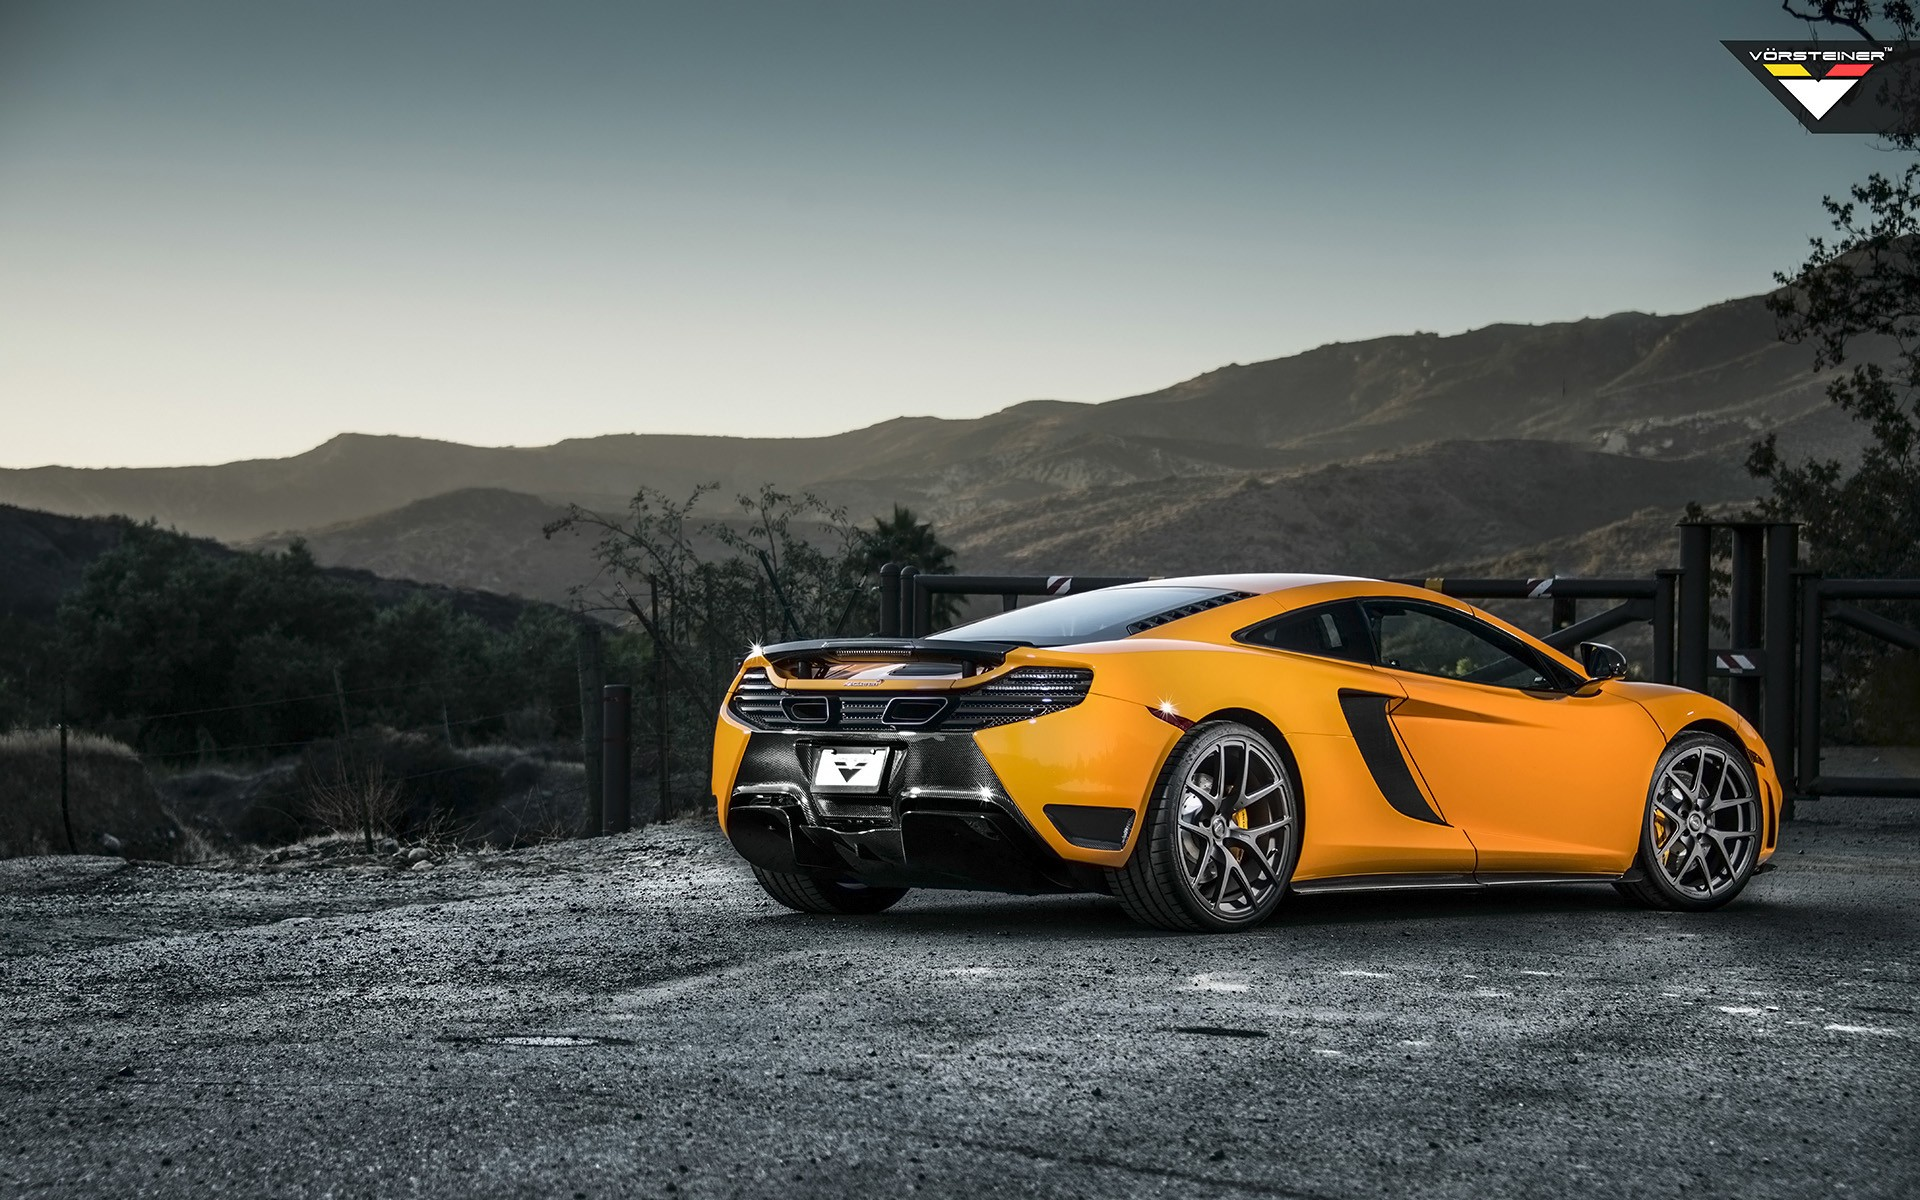 2013 Vorsteiner Mclaren Mp4 Vx 5 Wallpaper Hd Car Wallpapers